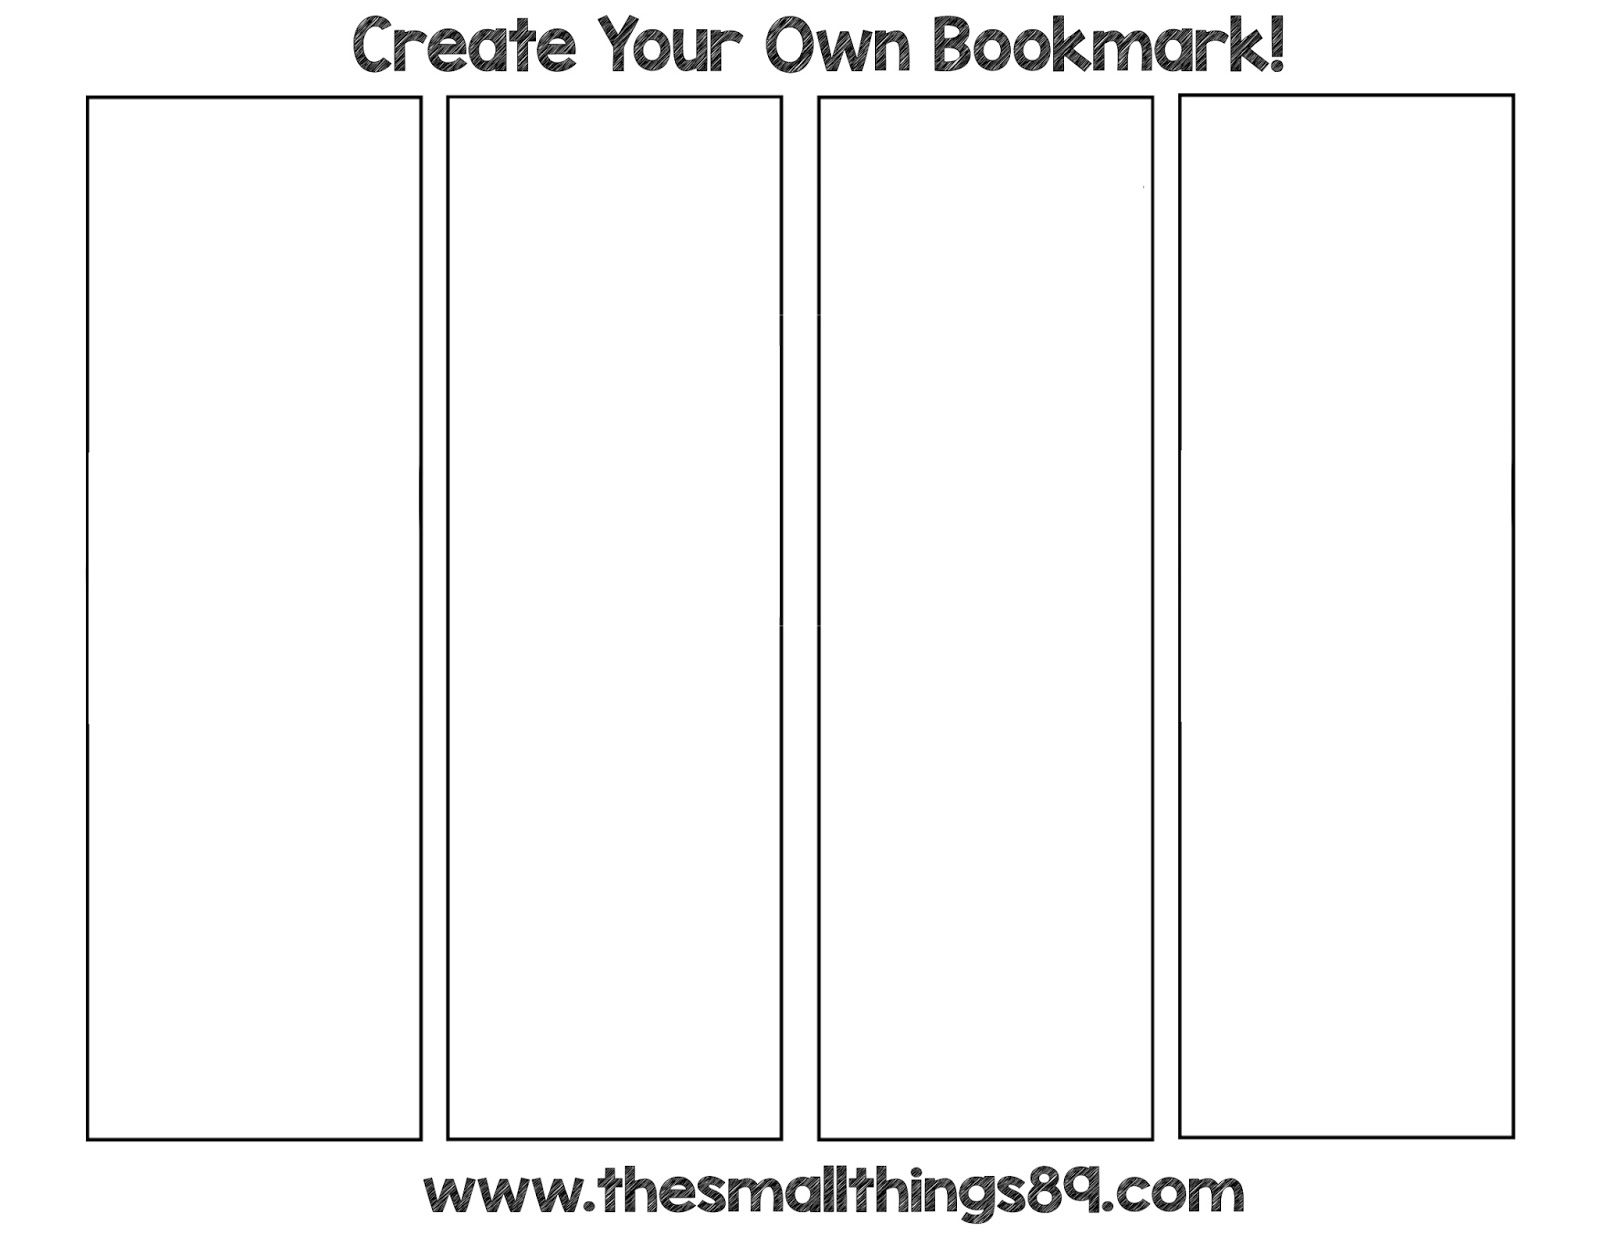 Create your own bookmark bookmark template create your for Create your own bookmark template